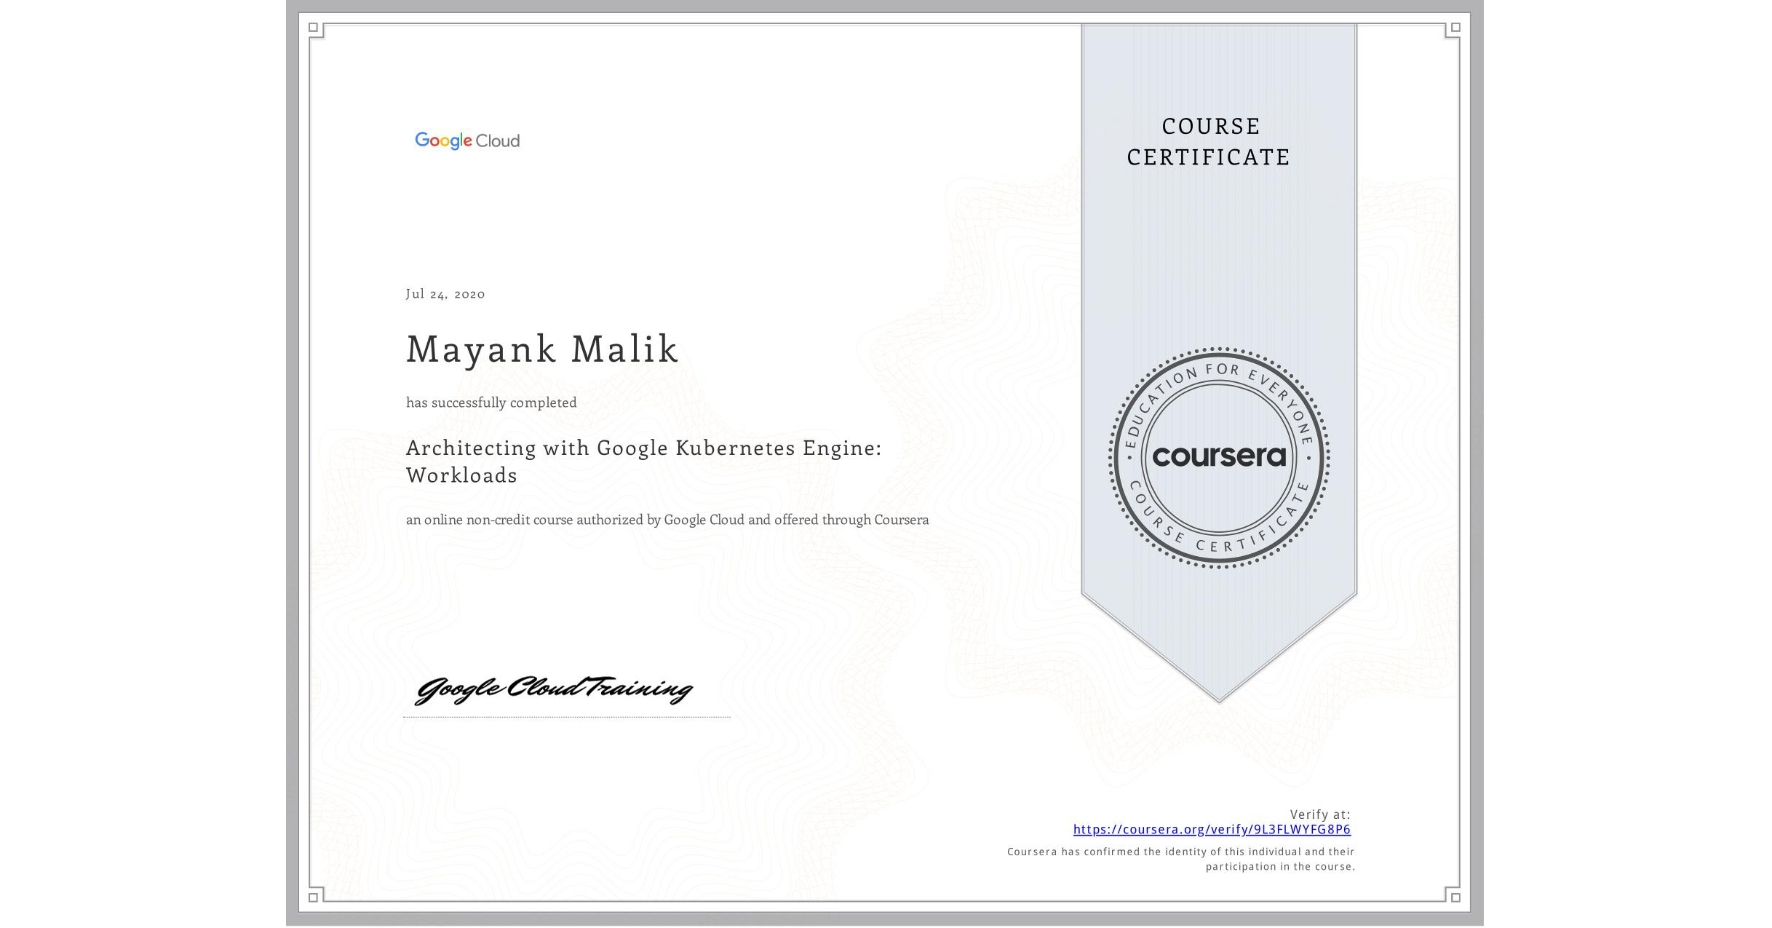 View certificate for Mayank Malik, Architecting with Google Kubernetes Engine: Workloads, an online non-credit course authorized by Google Cloud and offered through Coursera